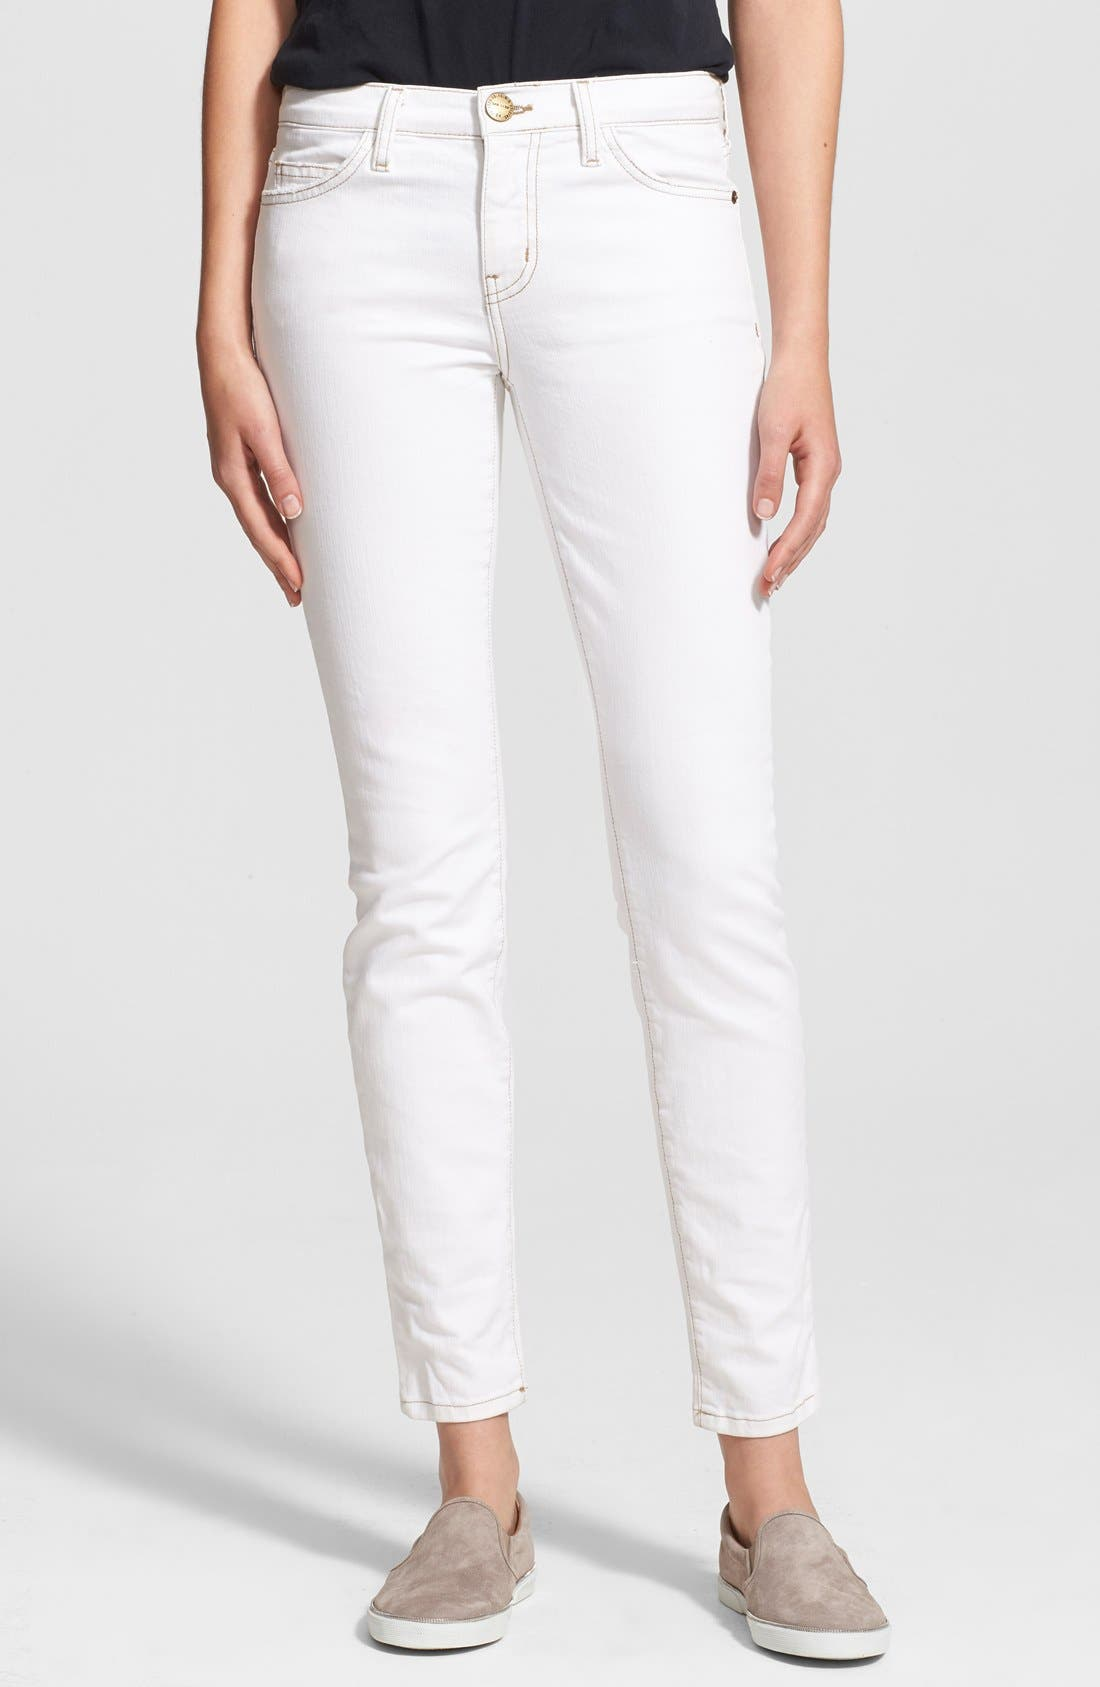 CURRENT/ELLIOTT,                             'The Ankle Skinny' Print Stretch Jeans,                             Main thumbnail 1, color,                             116